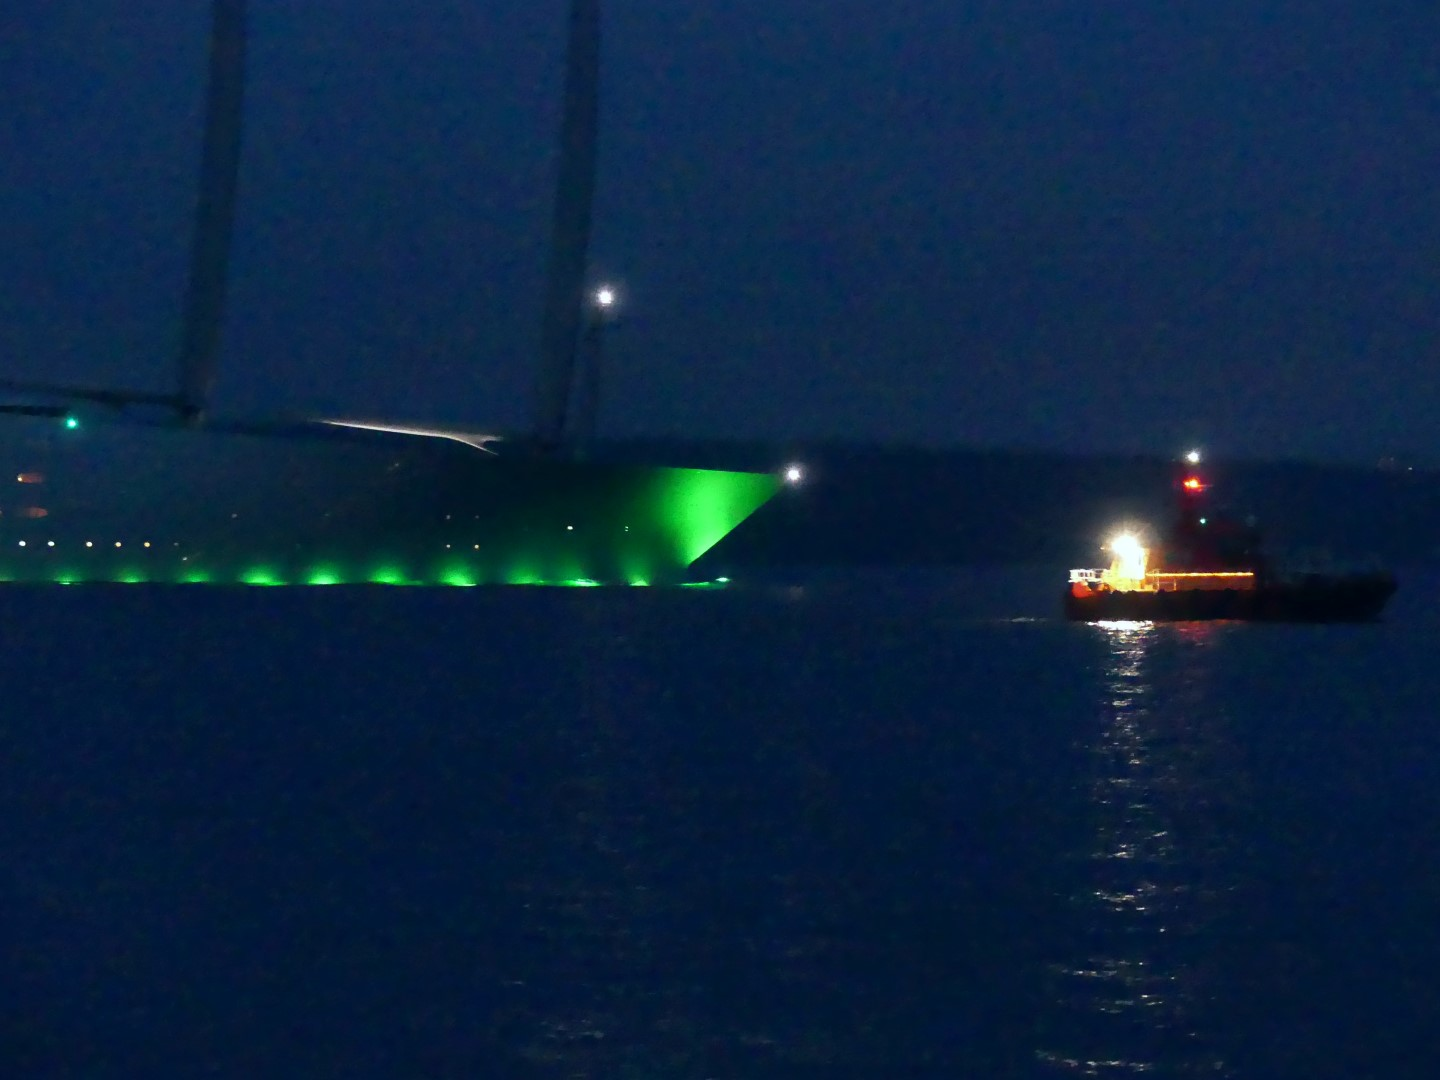 Sailing Yacht A nimmt Abschied